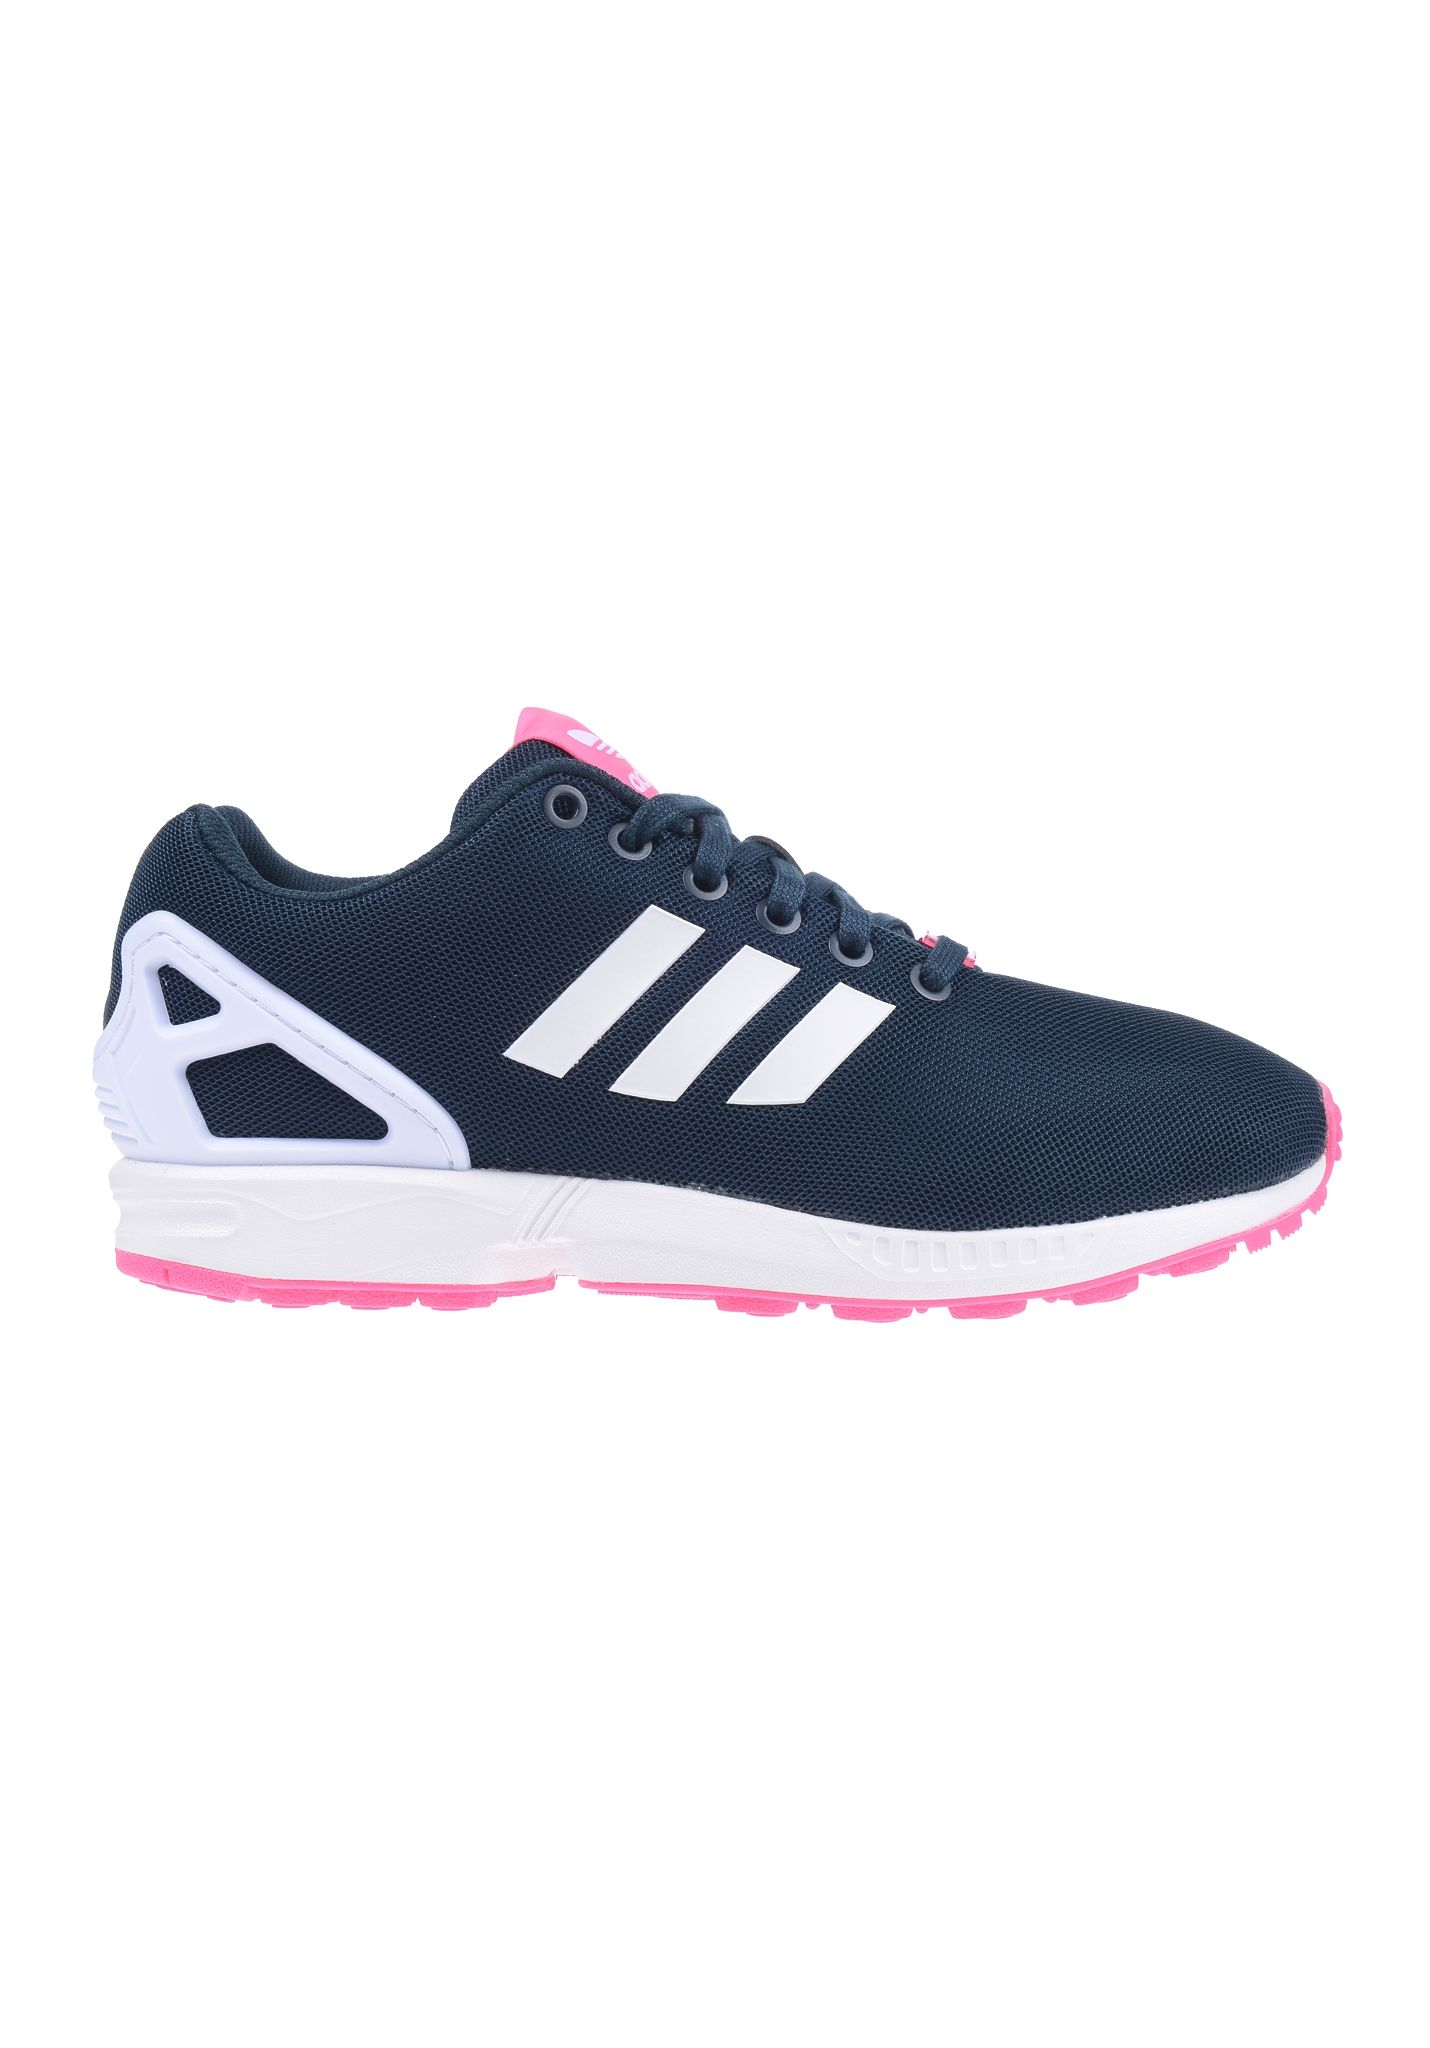 Adidas Torsion Zx Flux Blau